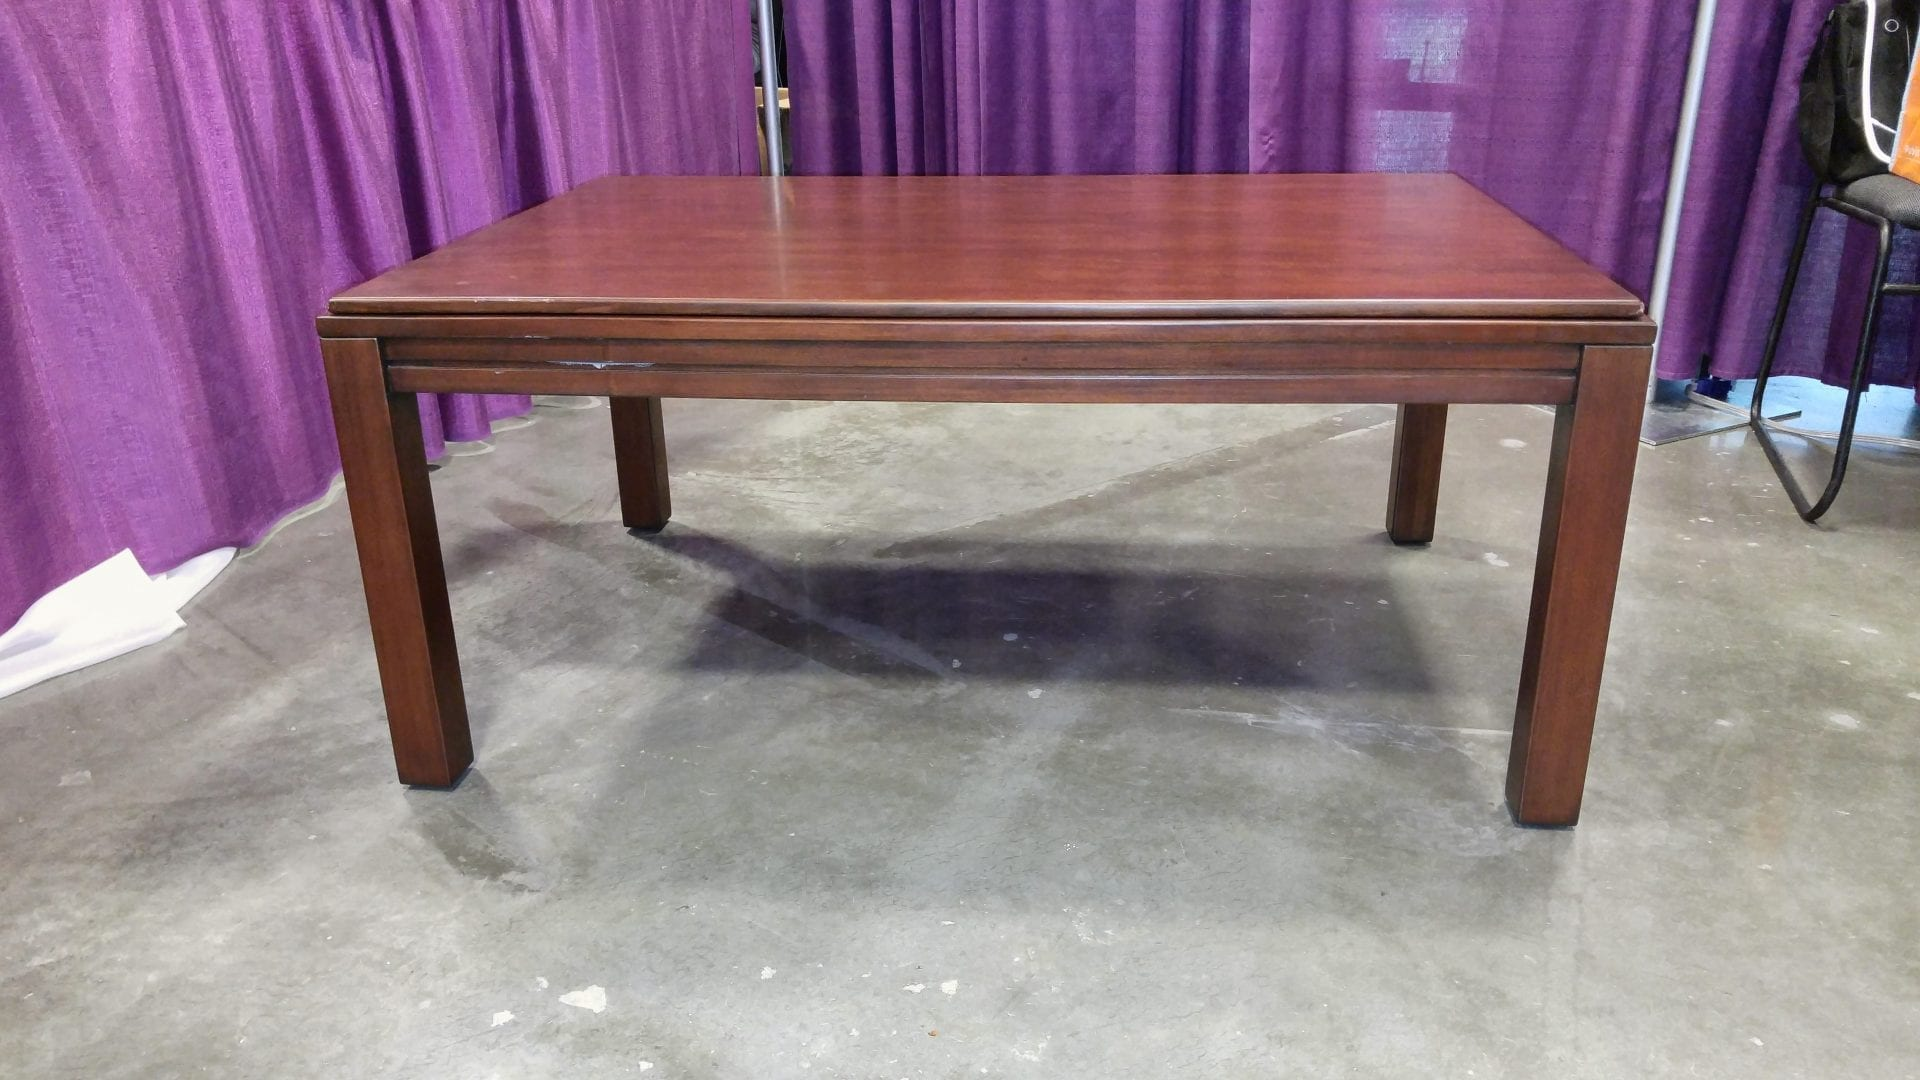 Coffee Game Table In Cherry With Top On. Yes, Price Includes Table Top!